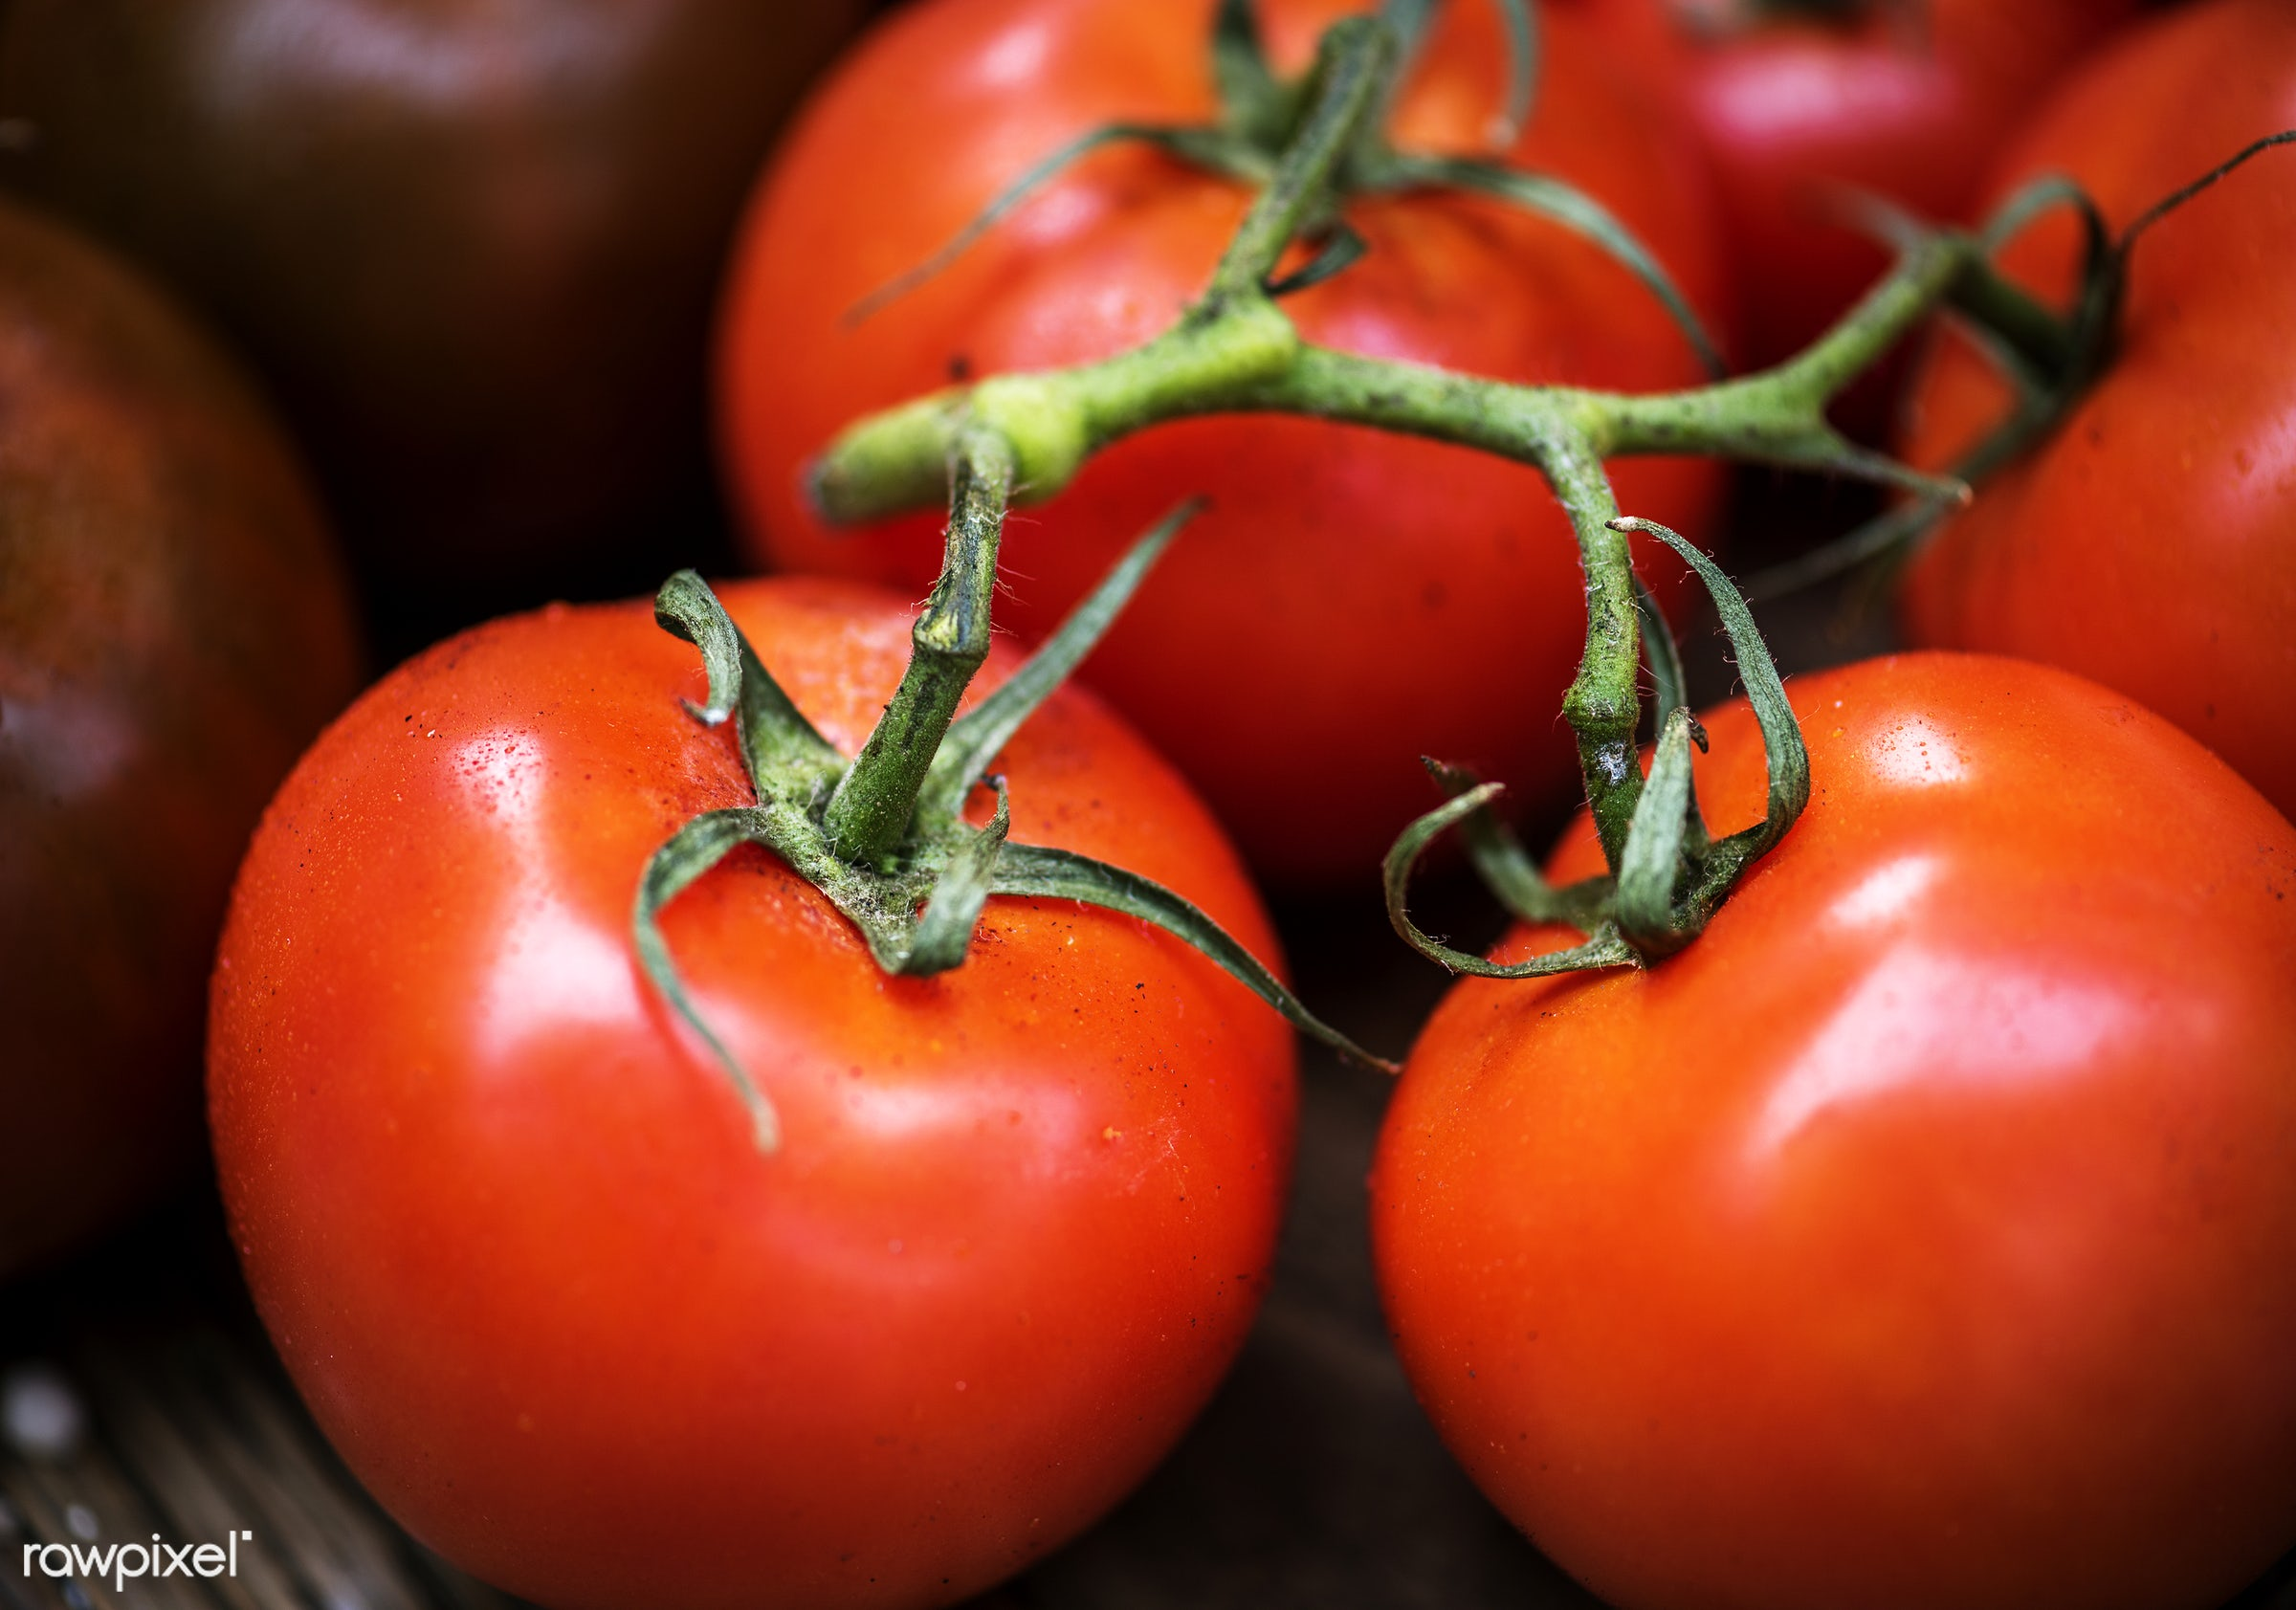 Tomatoes - raw, nobody, agriculture, tomatoes, farm, real, organic, nature, fresh, food, healthy, harvest, vegetable,...